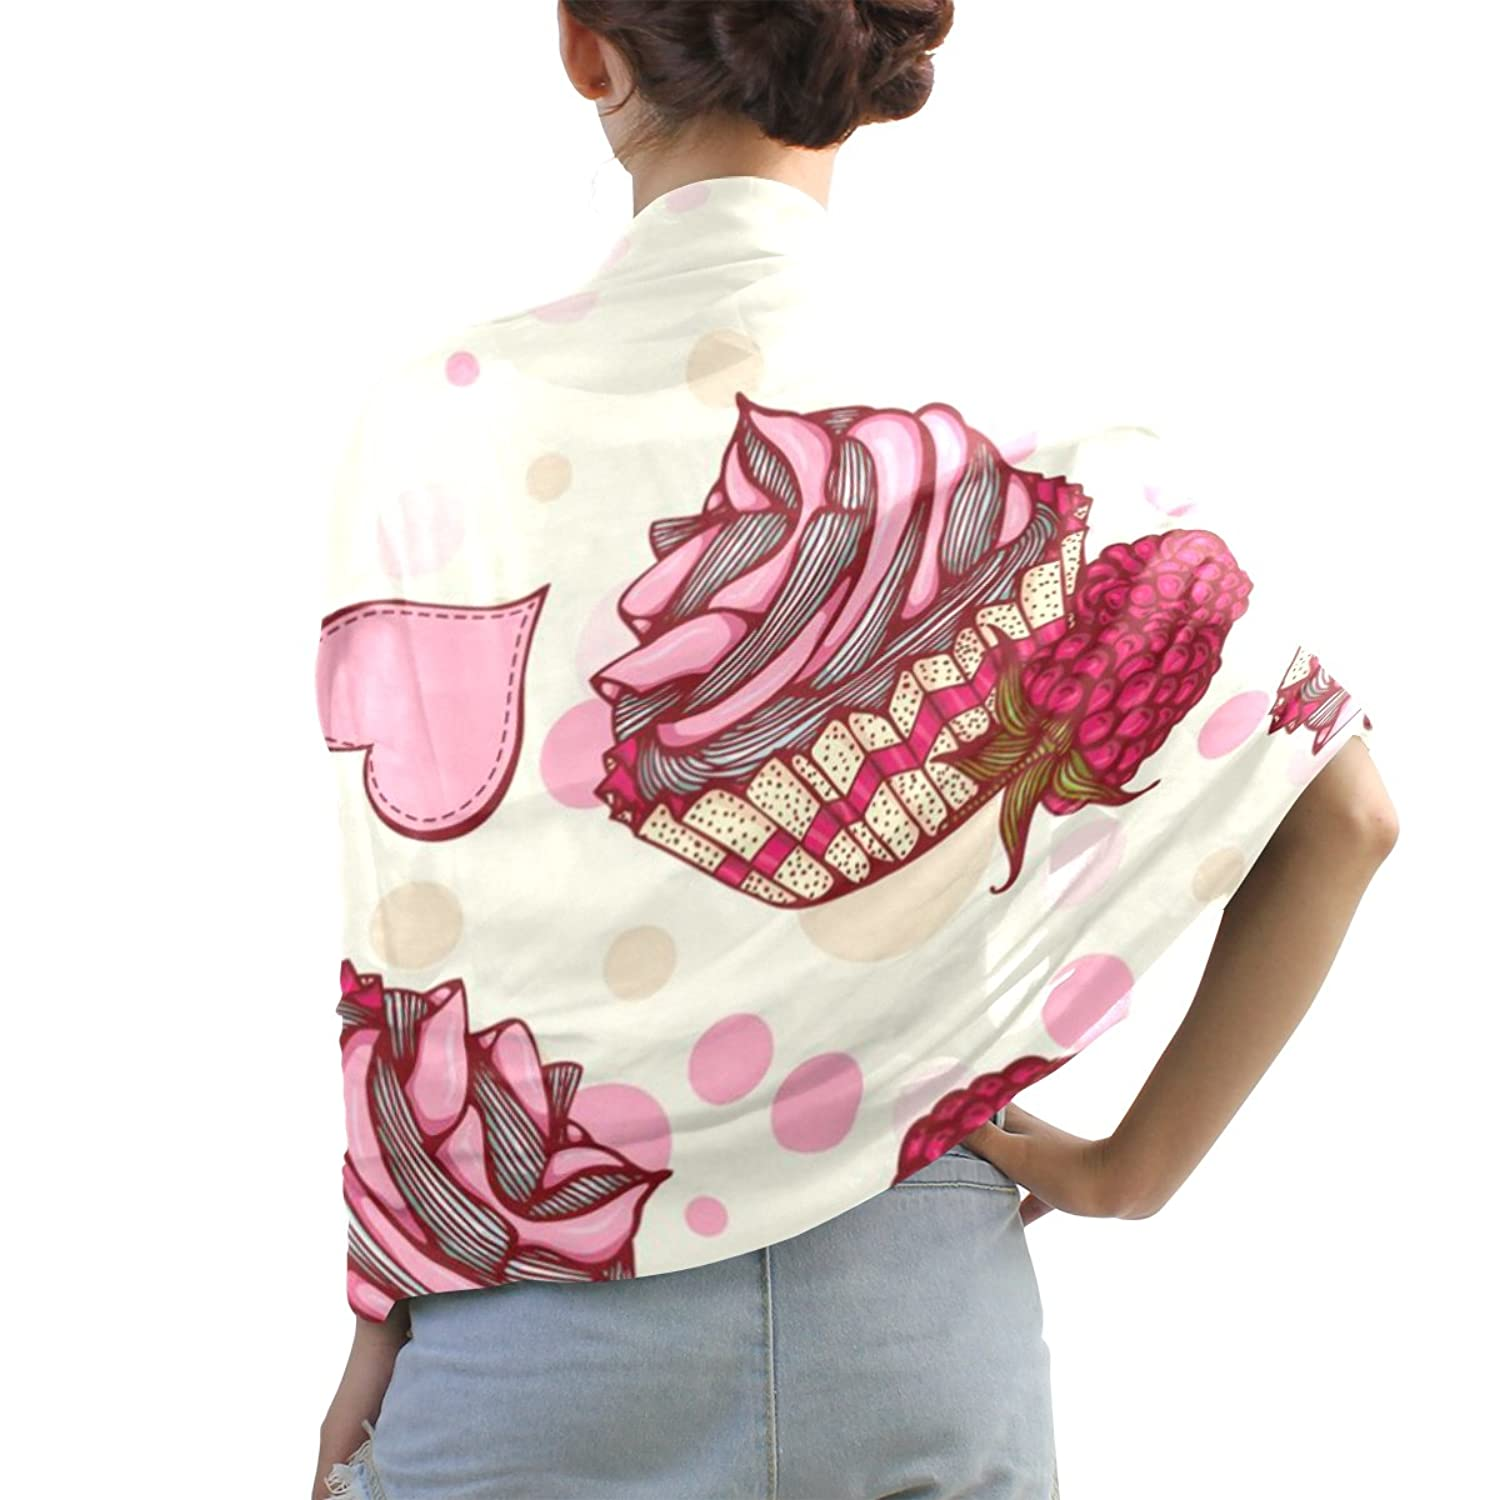 Shawl Wrap Sheer Scarves,Hand Painted Girls Like Pink Cake,Oblong Chiffon Scarf